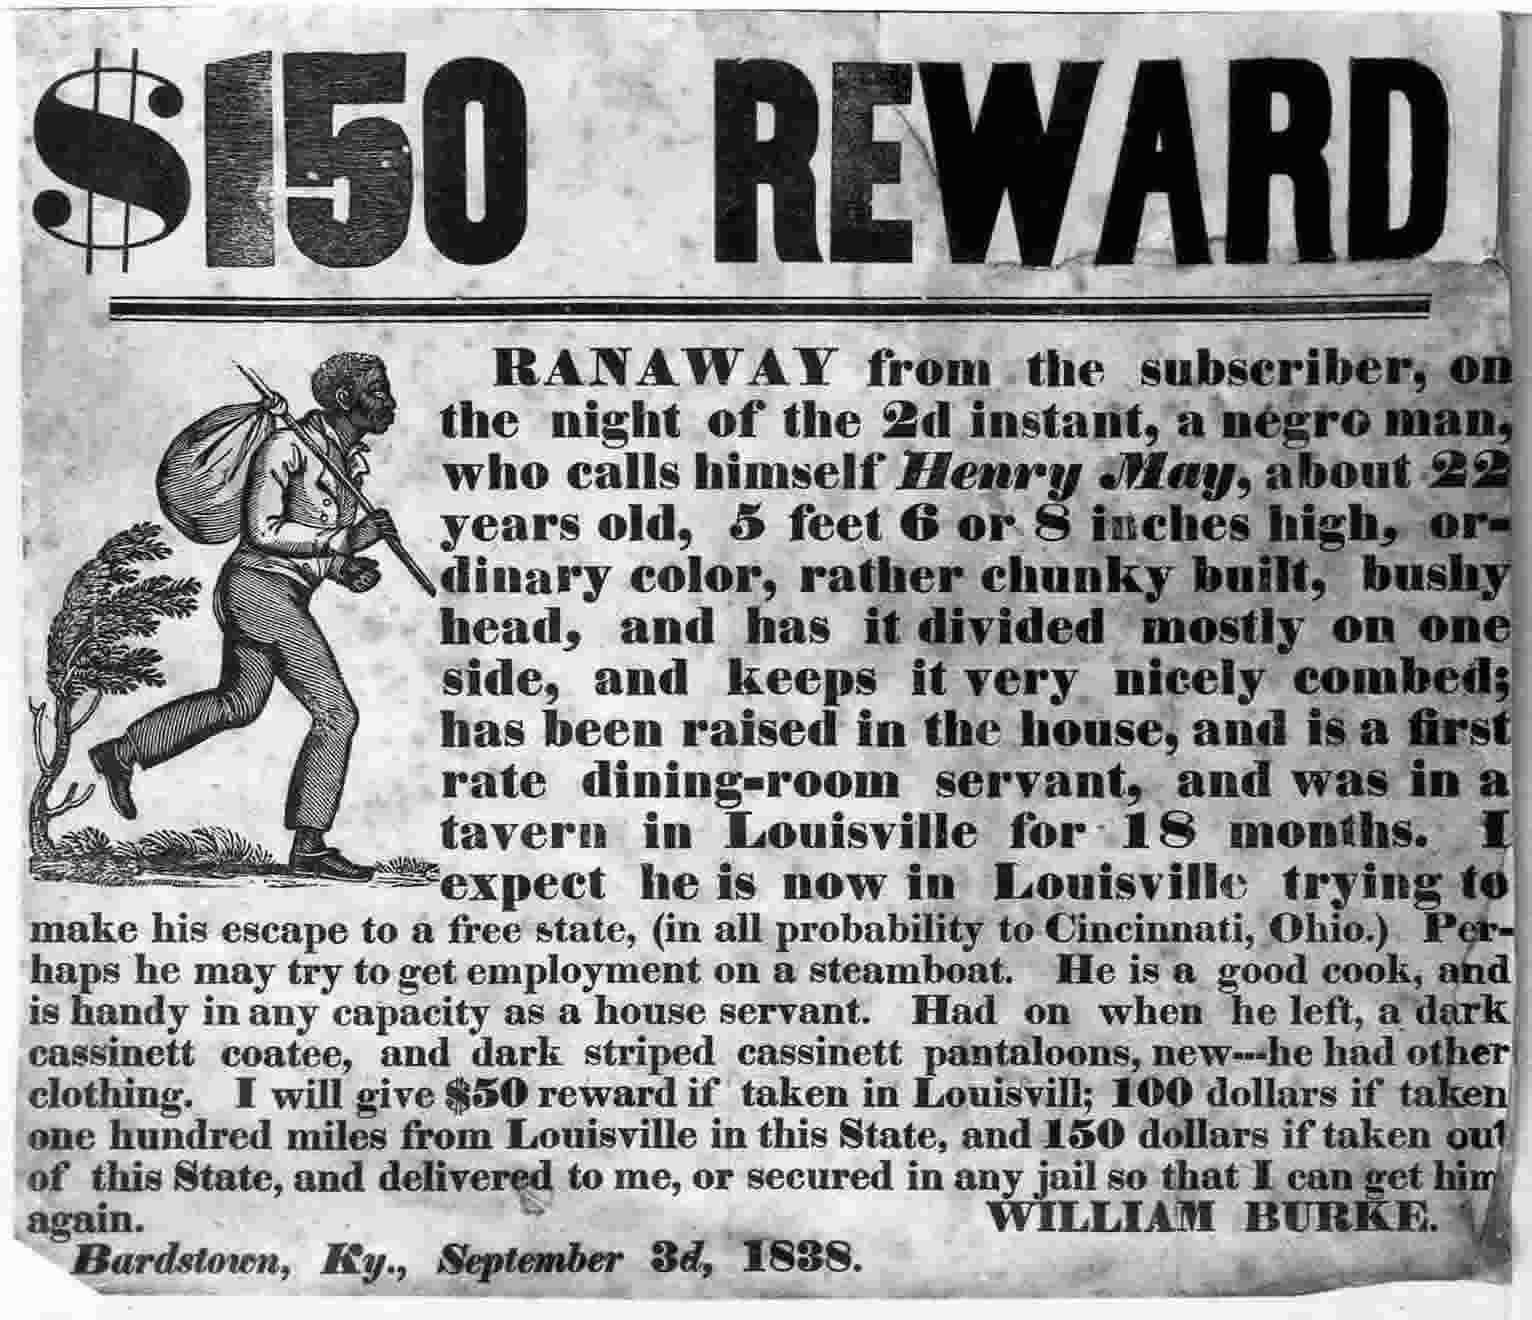 My Latest Article On Things: The Fugitive Slave Act Of 1850, SEC 7 Made It Harder For